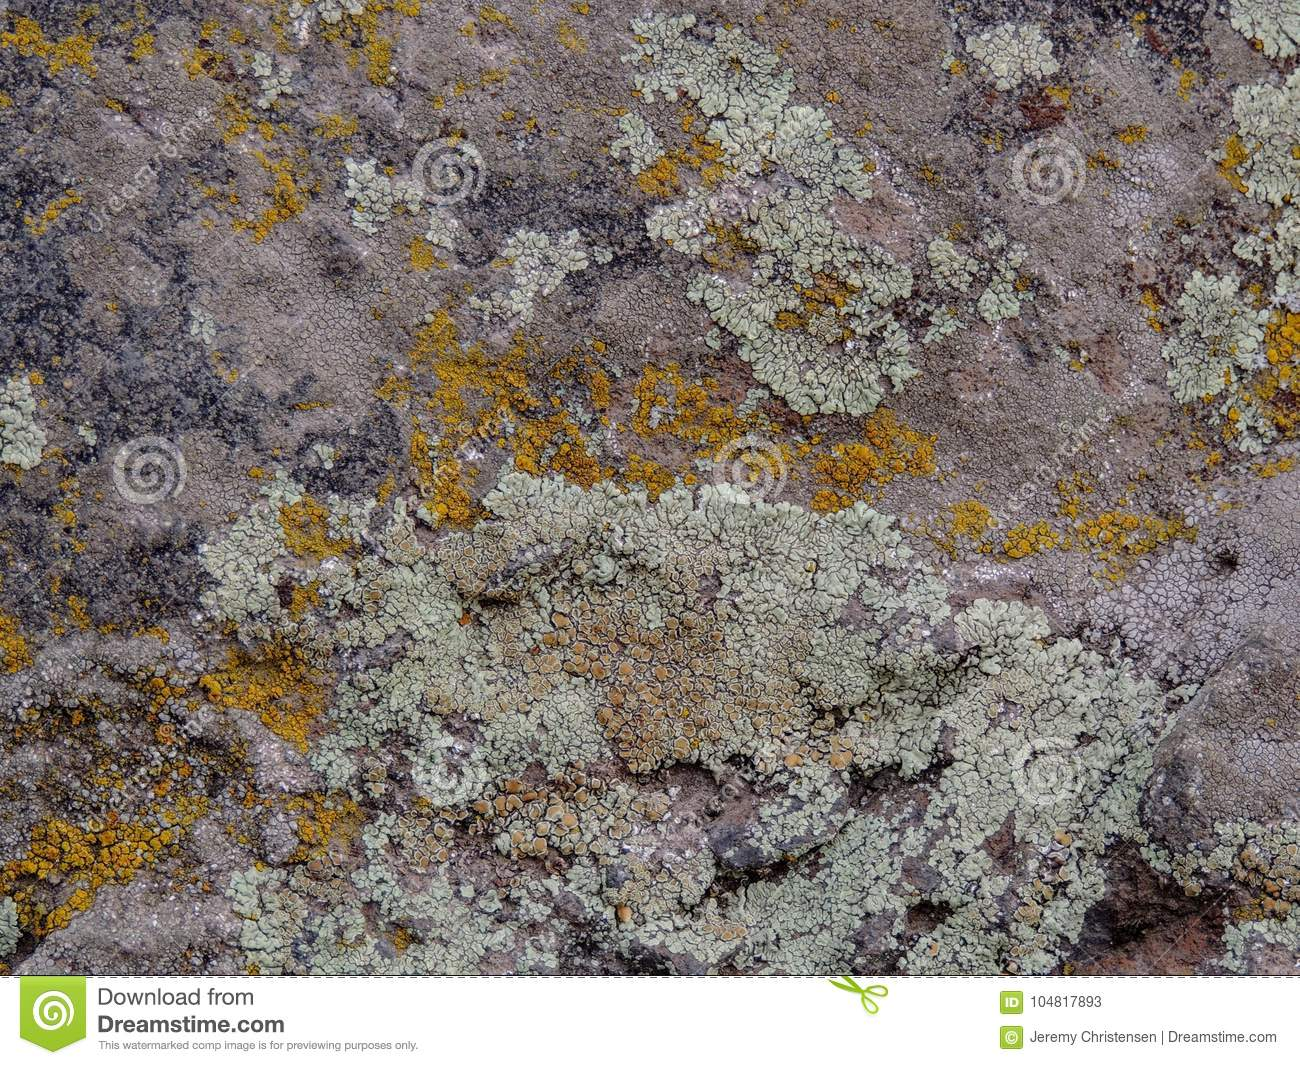 Gray, Green, Black, Lichen on rock, symbiotic combination of a fungus with an algae or bacterium, close up, macro in fall on the Y